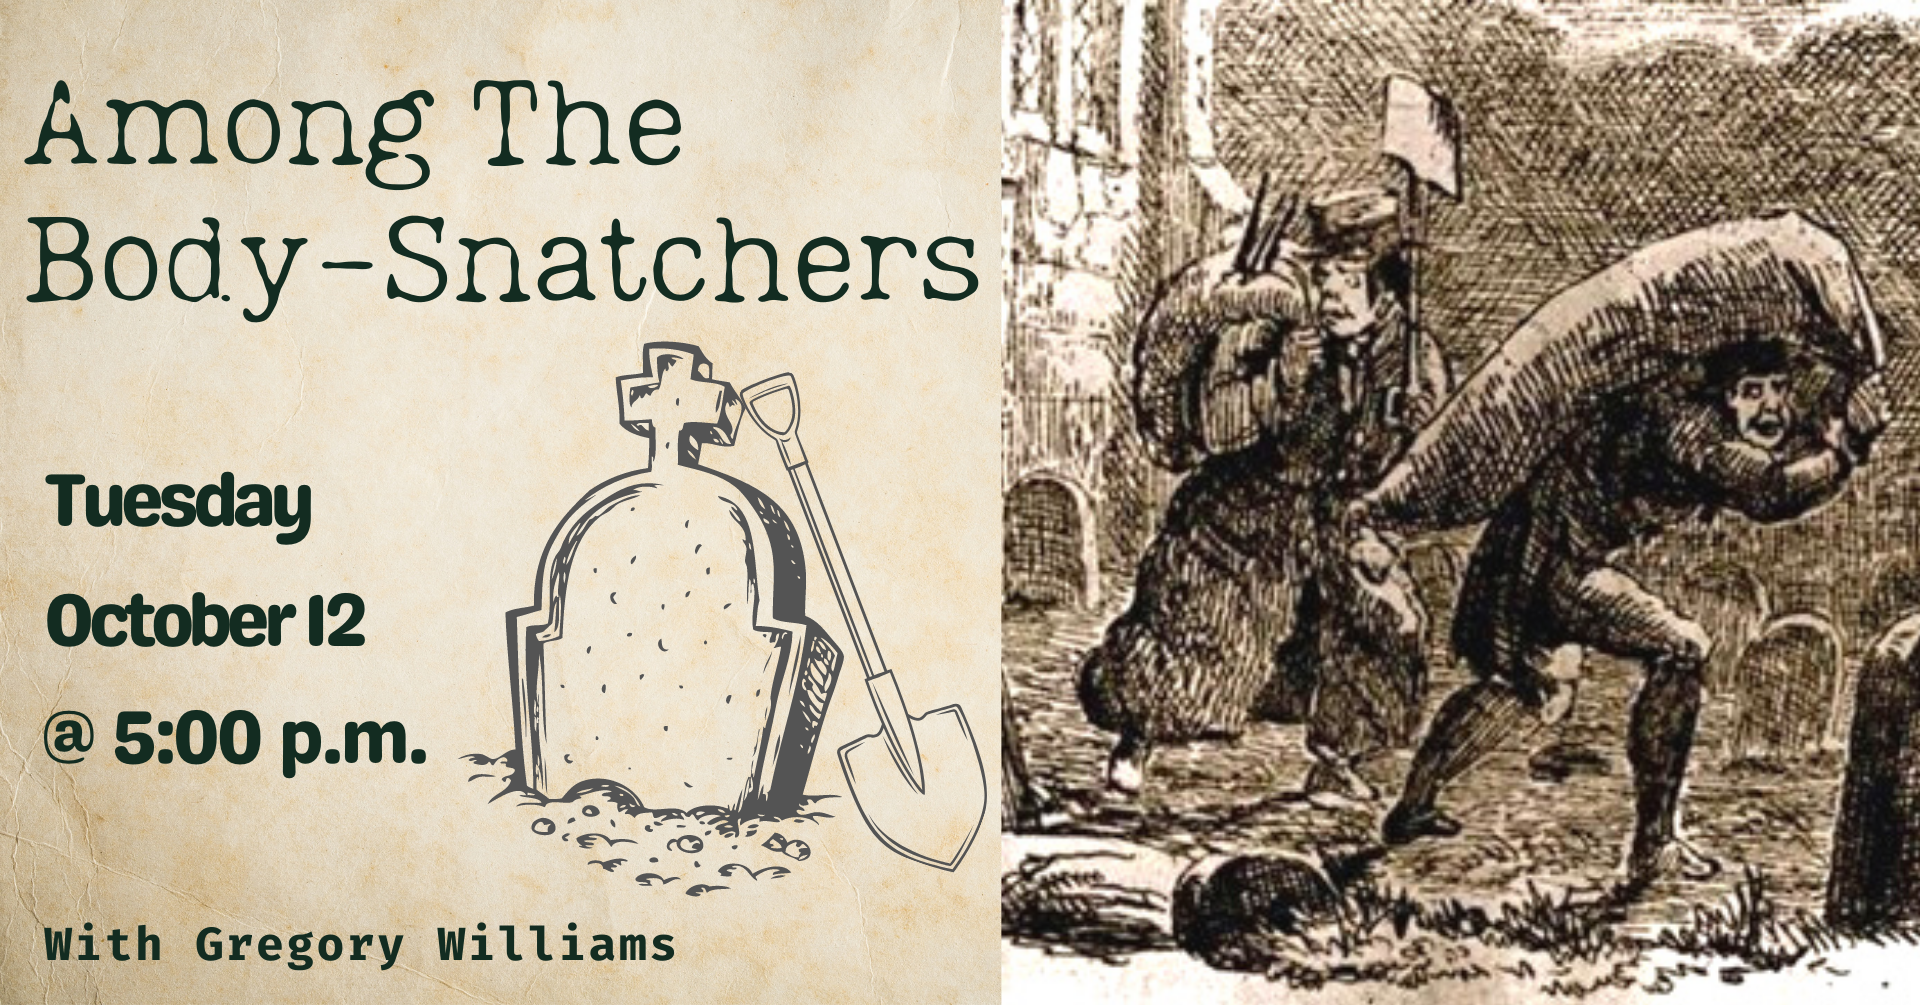 An image of two grave robbers carrying a large sack.